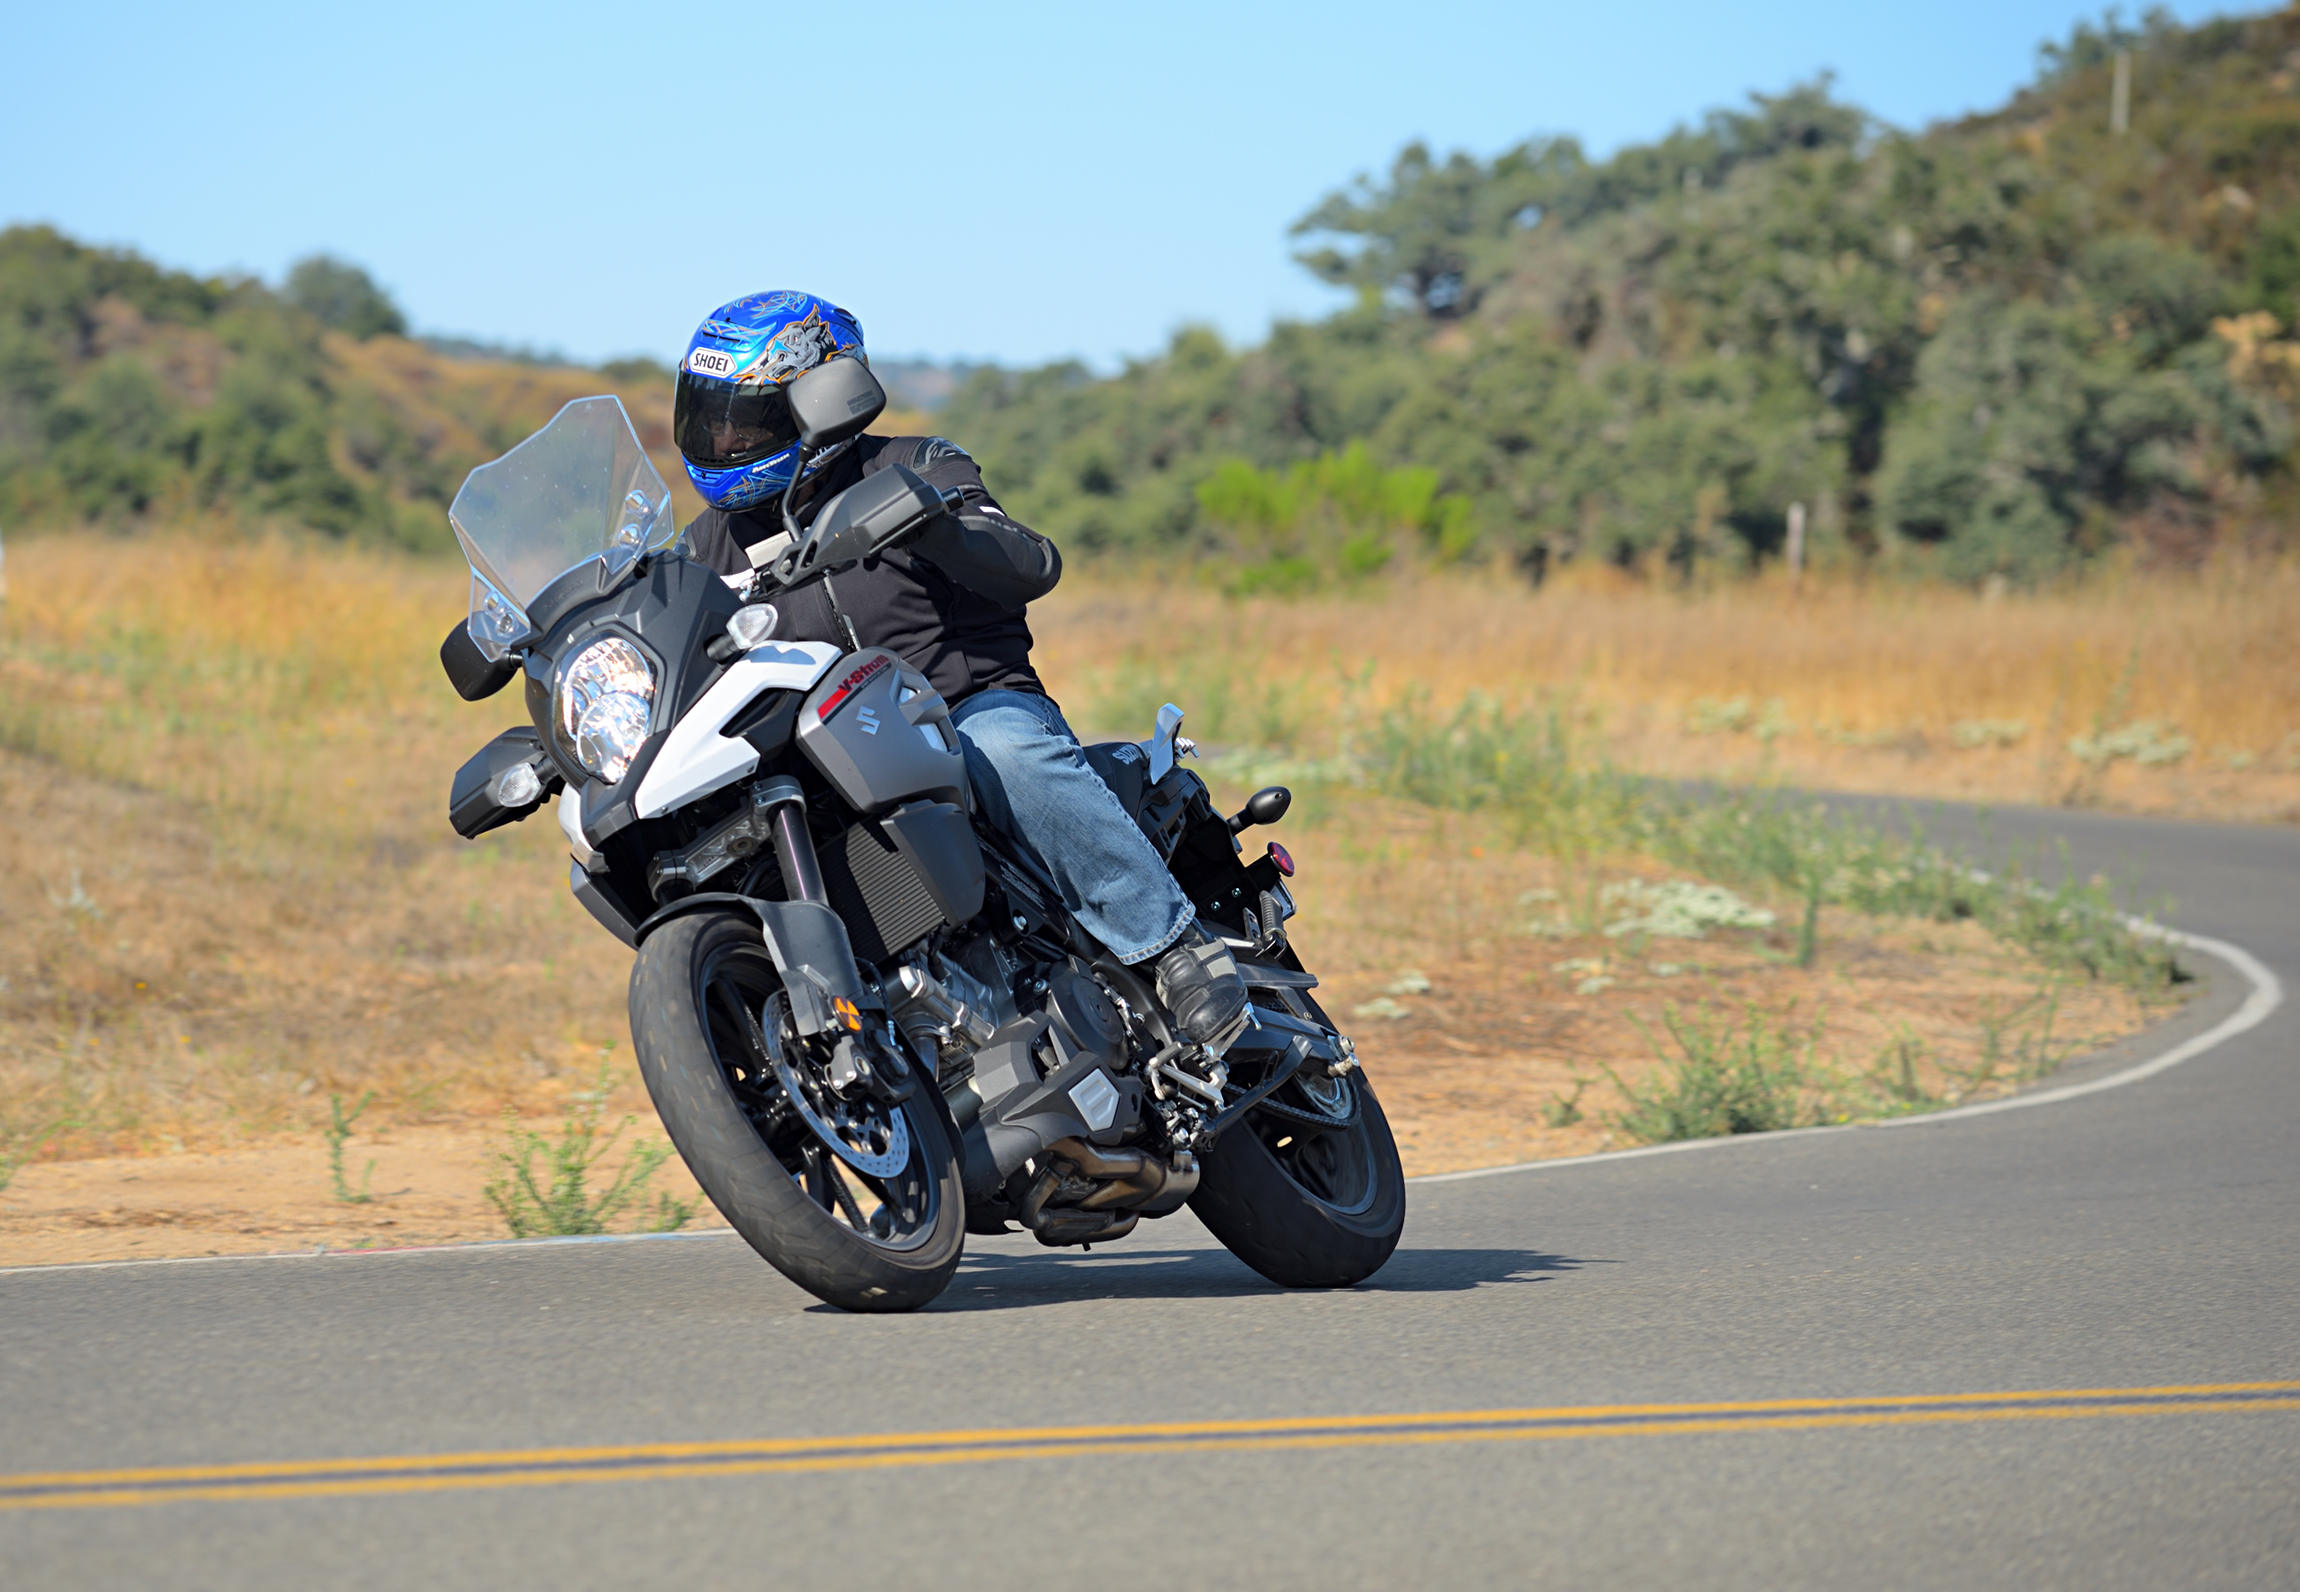 2018 Suzuki V Strom 1000: MD Ride Review